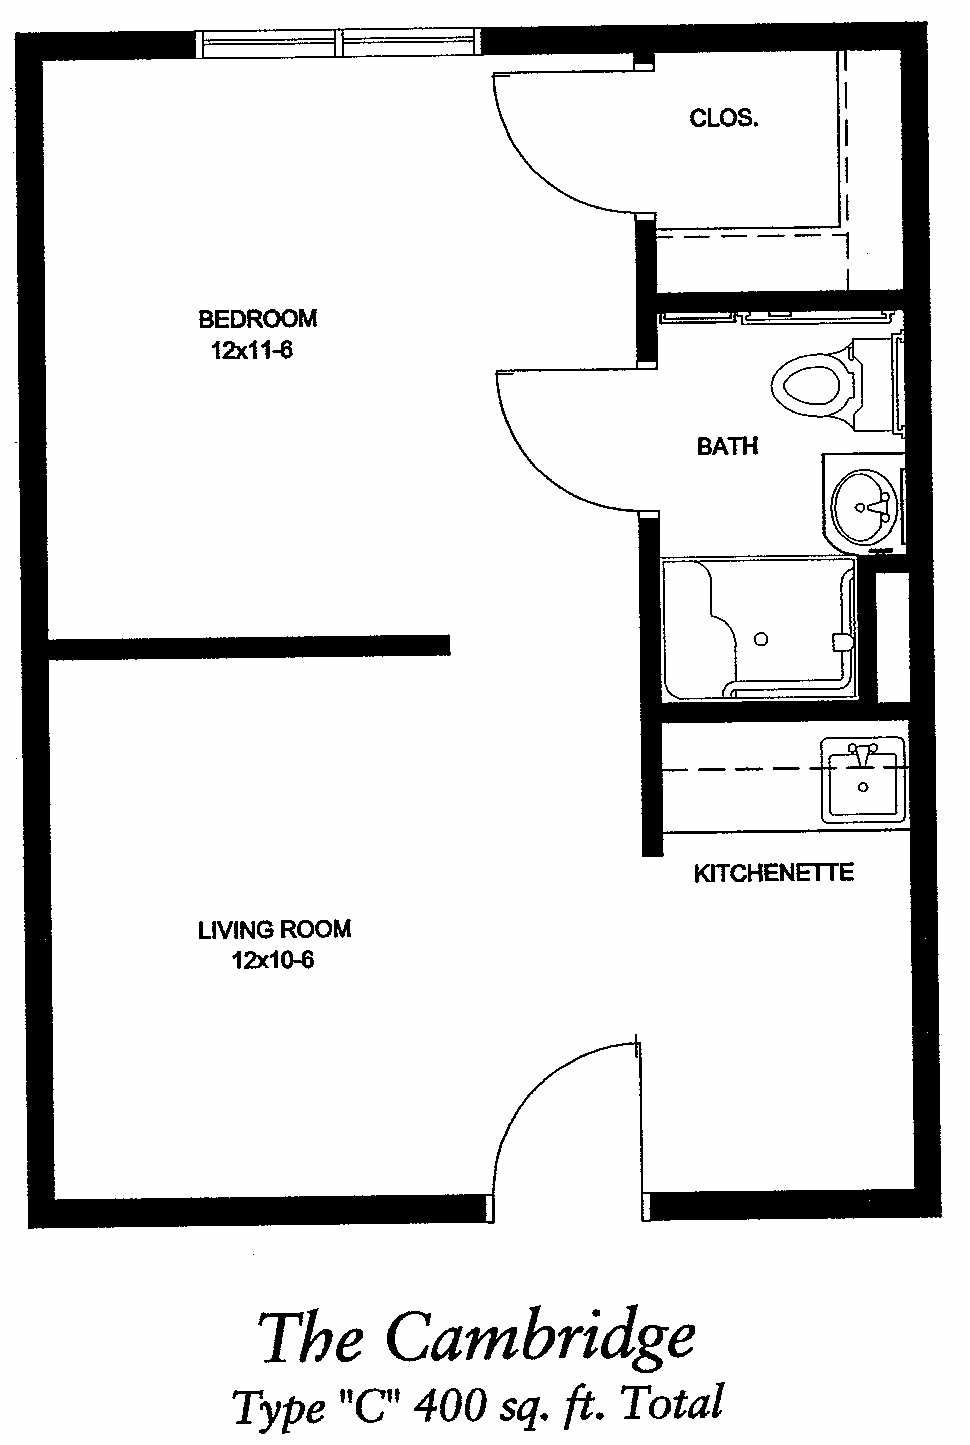 Cambridge Jpg 970 1 445 Pixels Tiny House Floor Plans Studio Floor Plans Studio Apartment Floor Plans